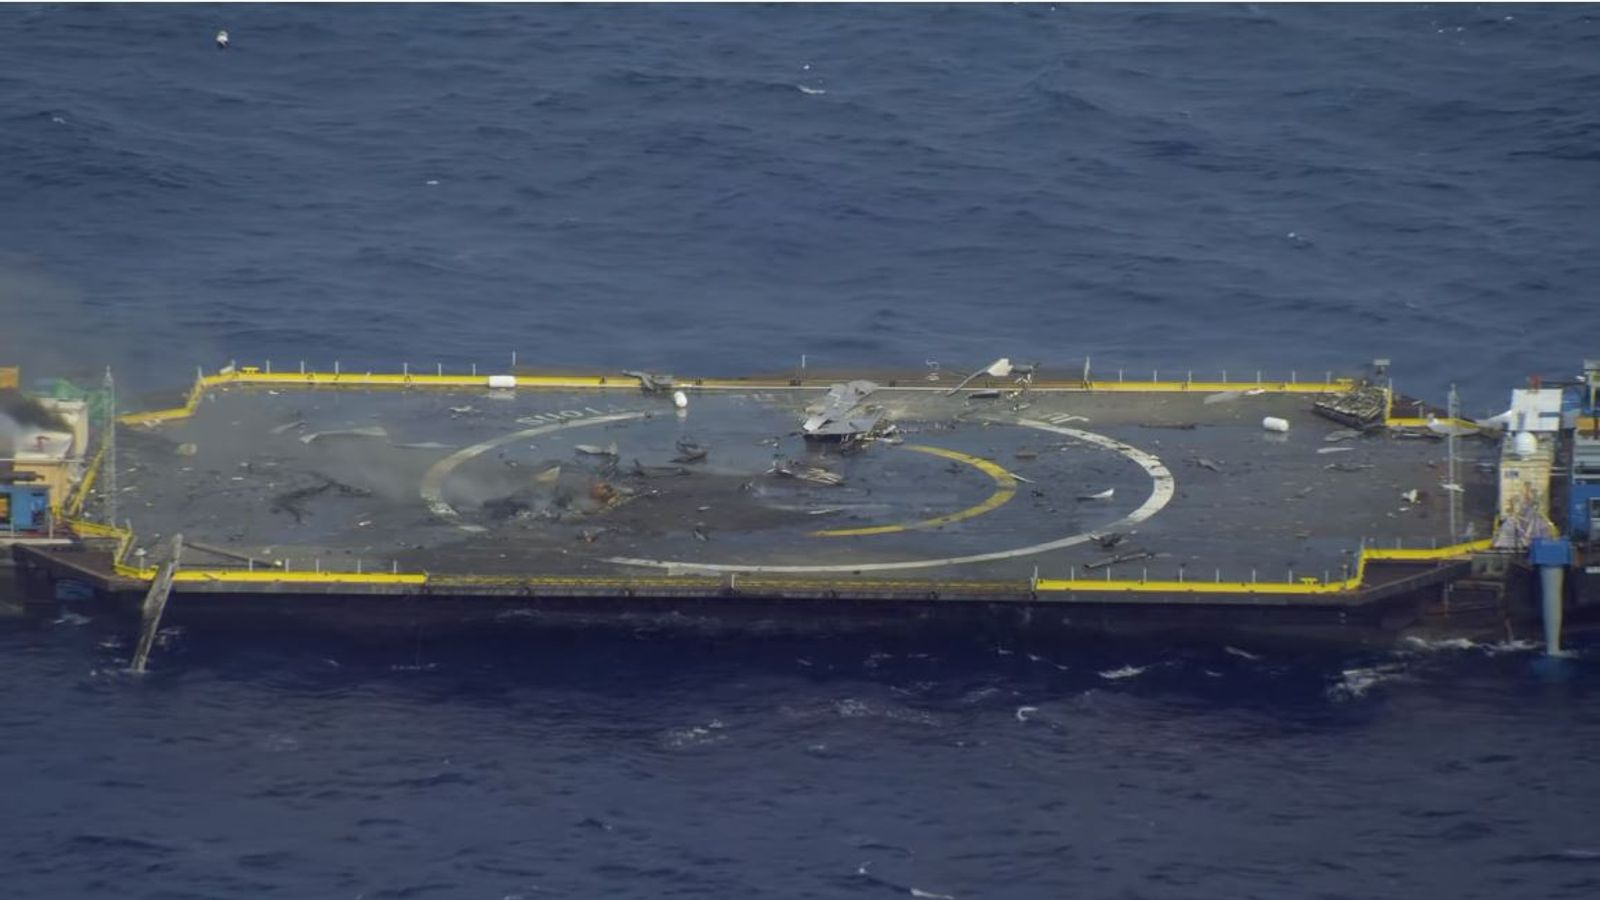 SpaceX rocket crashes into sea after missing landing pad